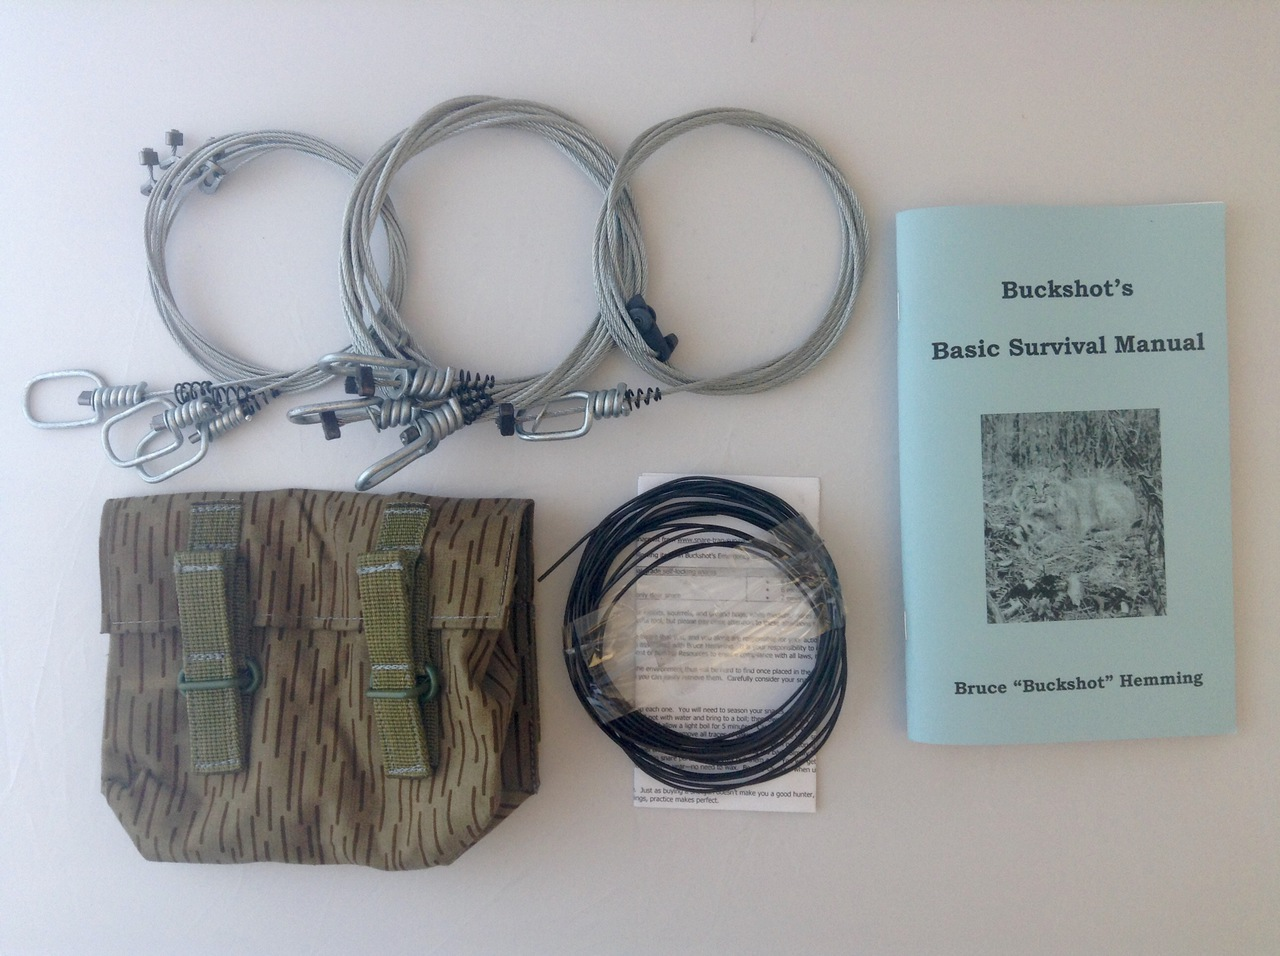 Buckshot's Small Snare Kit & Buckshot's Basic Survival Manual